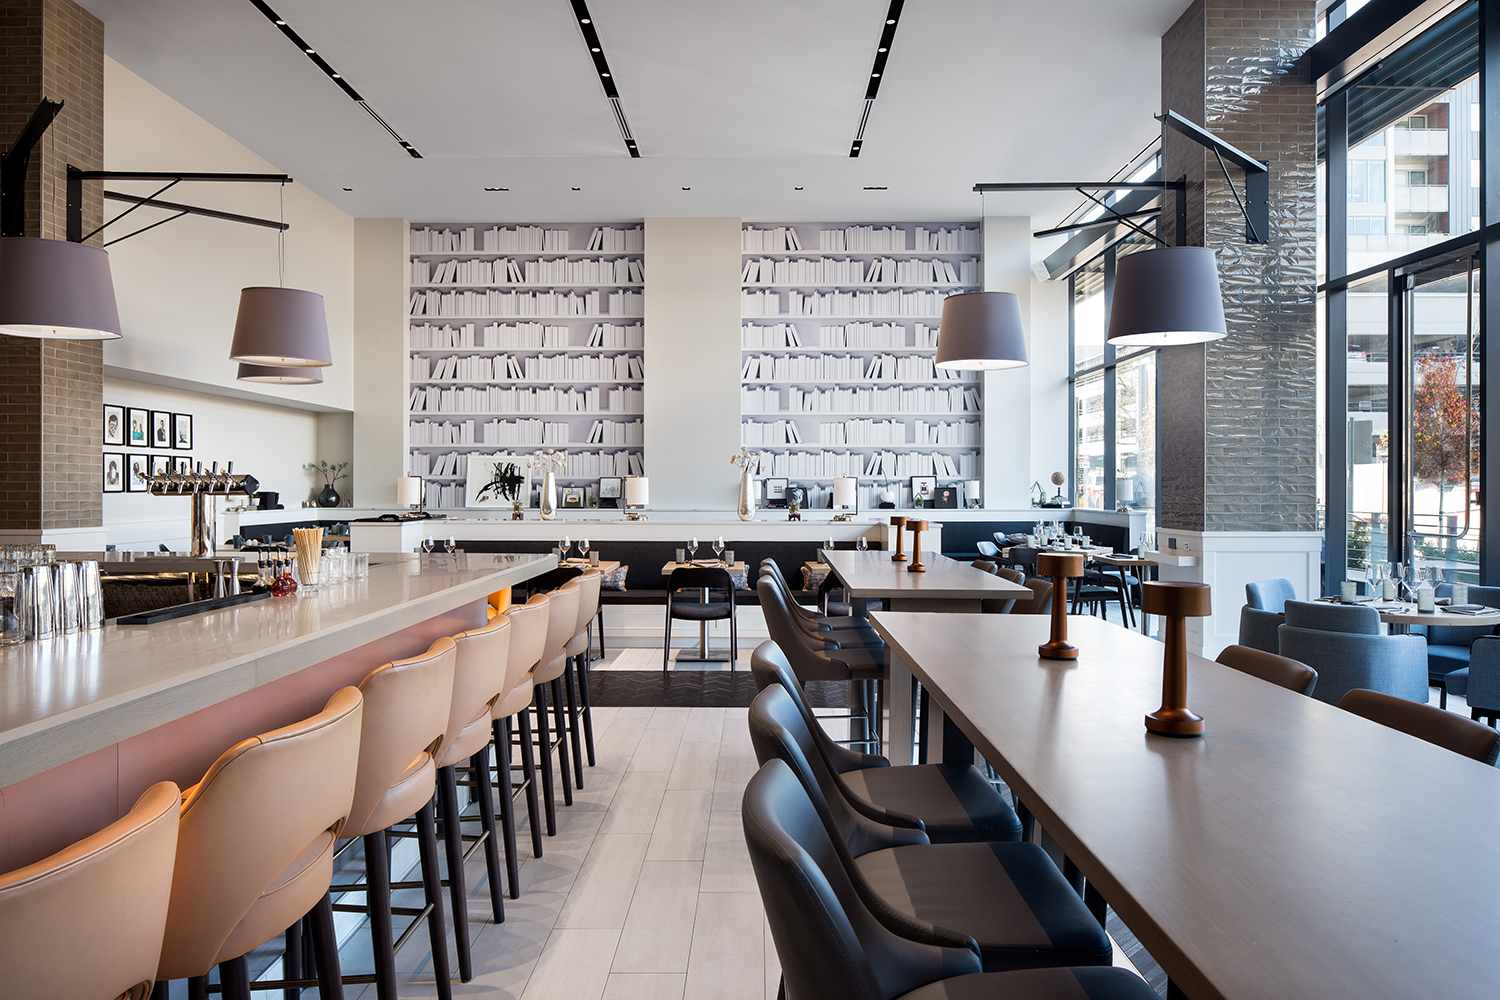 Urban. Sleek. Open. Inviting. Elegant. Located within The Jacquard hotel in Denver's dynamic Cherry Creek North neighborhood, this 3,500 square foot restaurant is tailored to perfection.